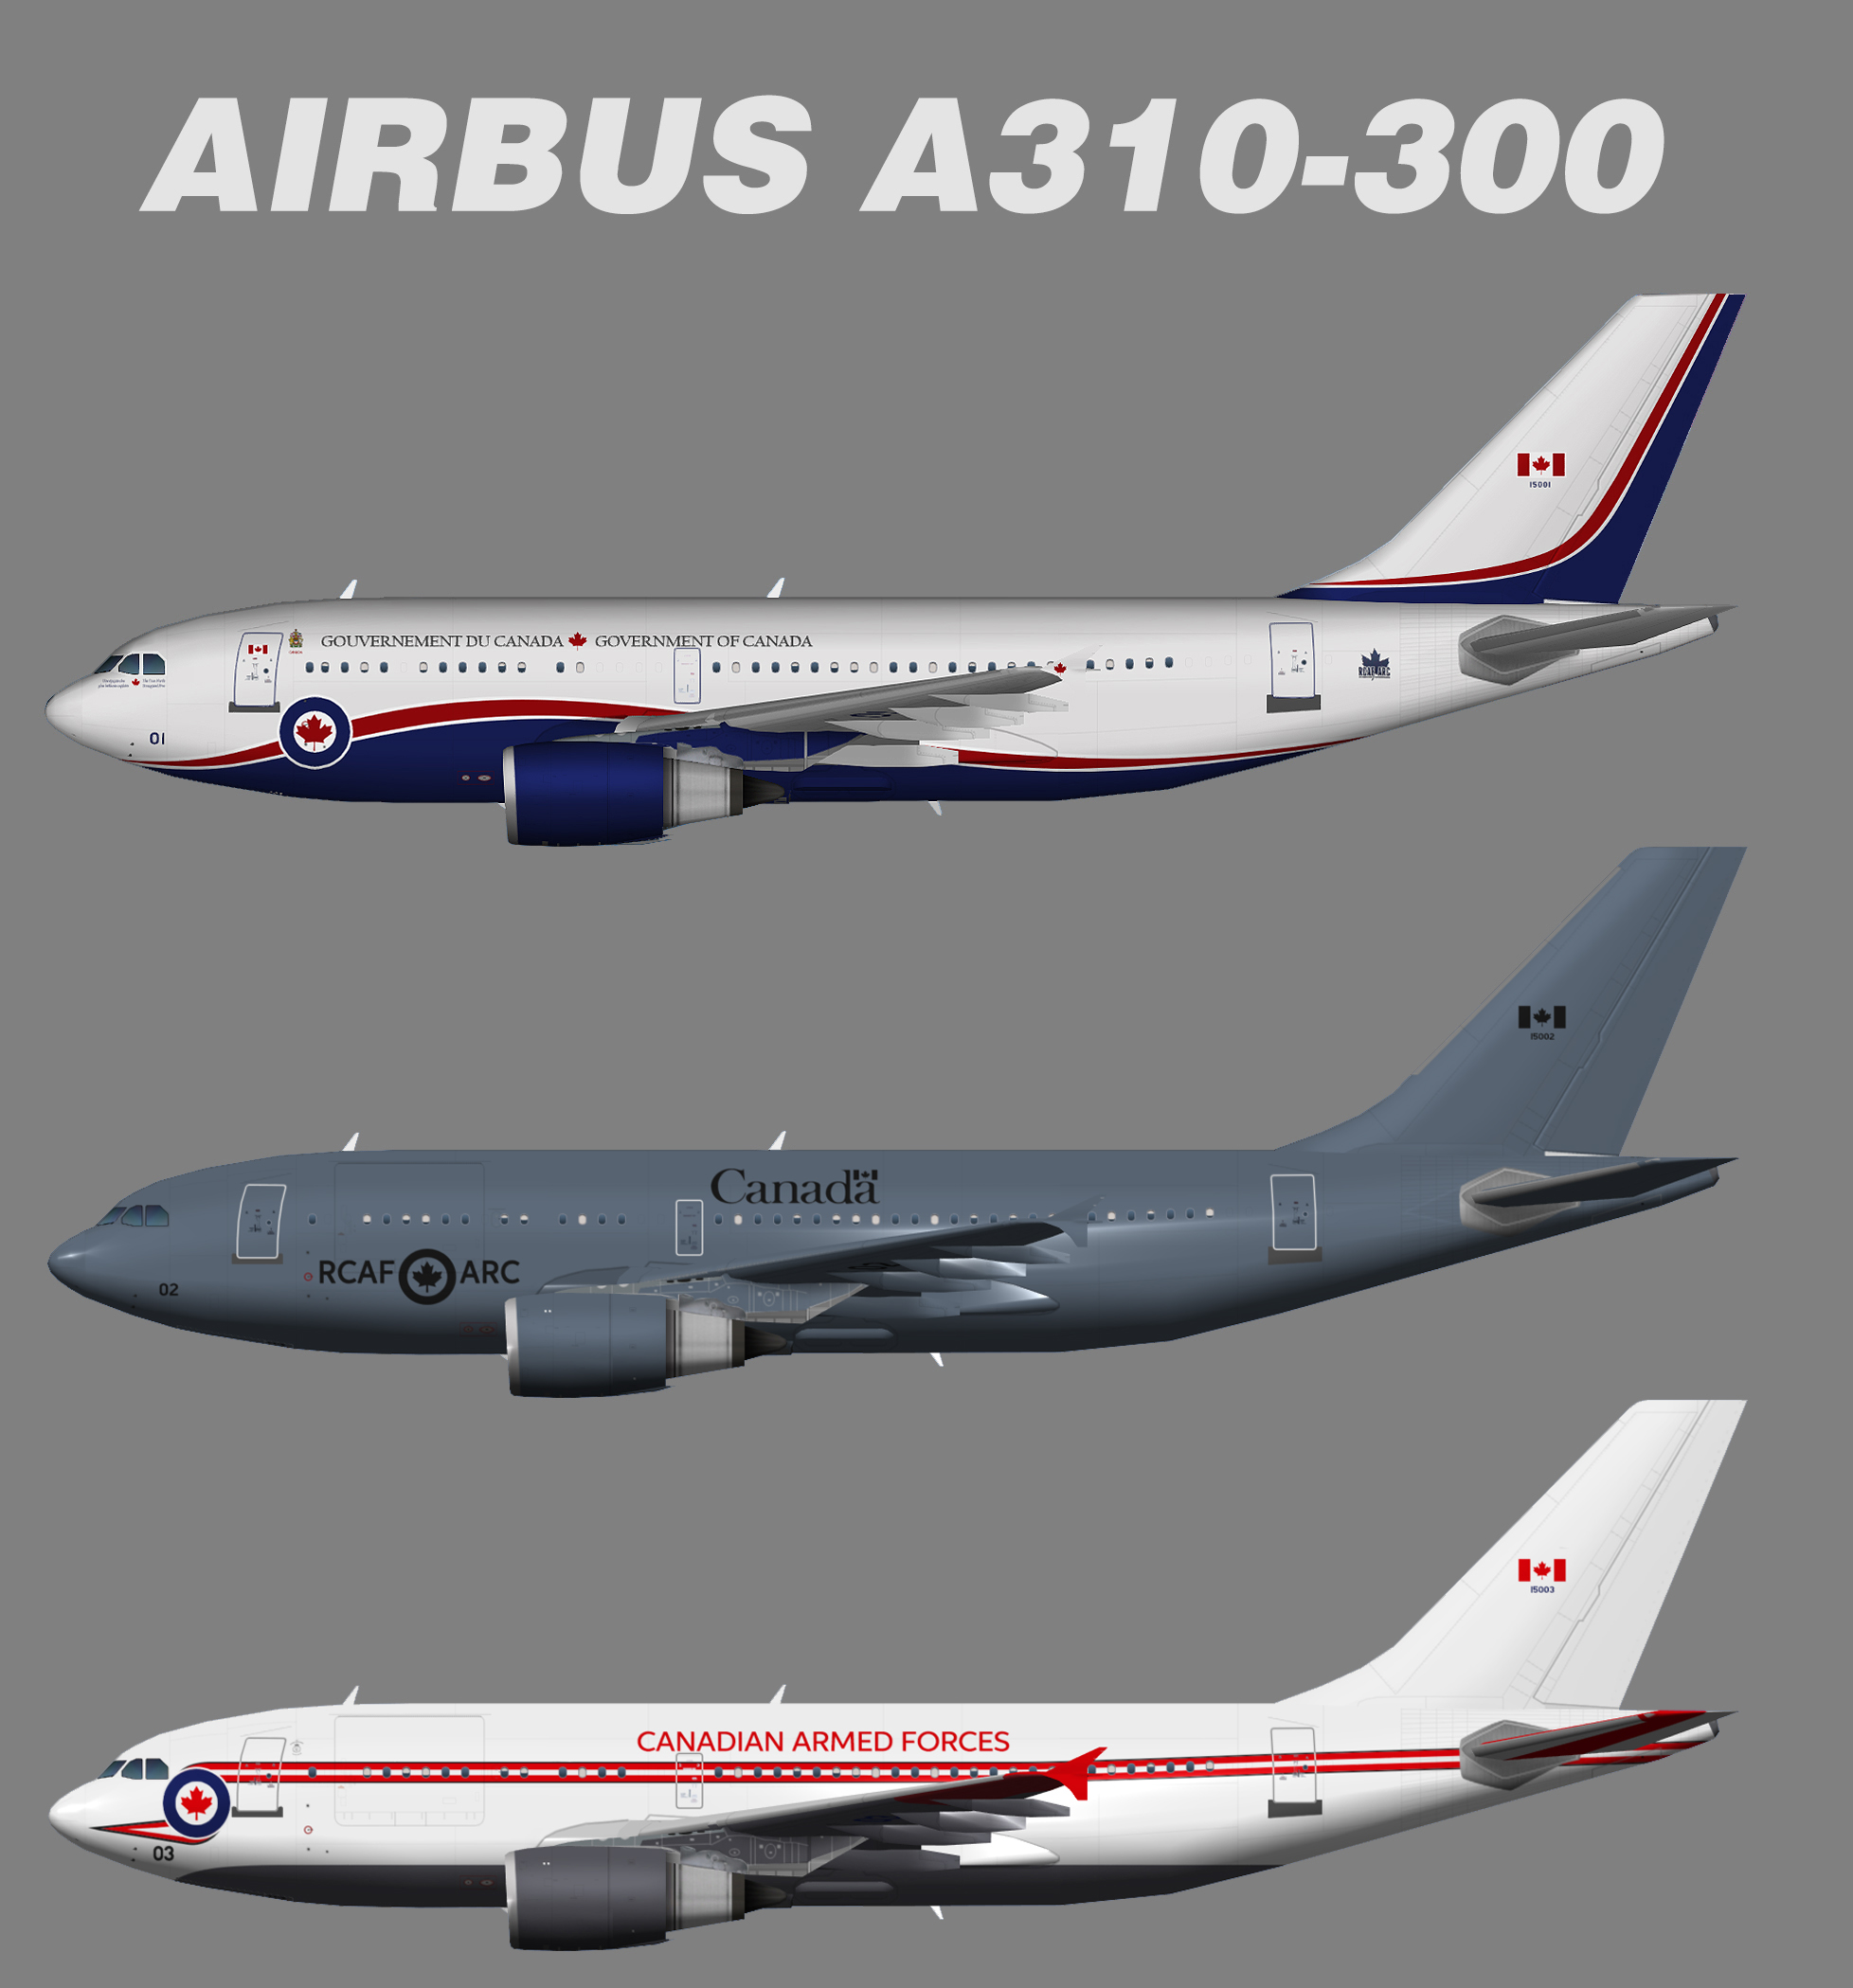 Canadian Armed Forces Airbus A310-300